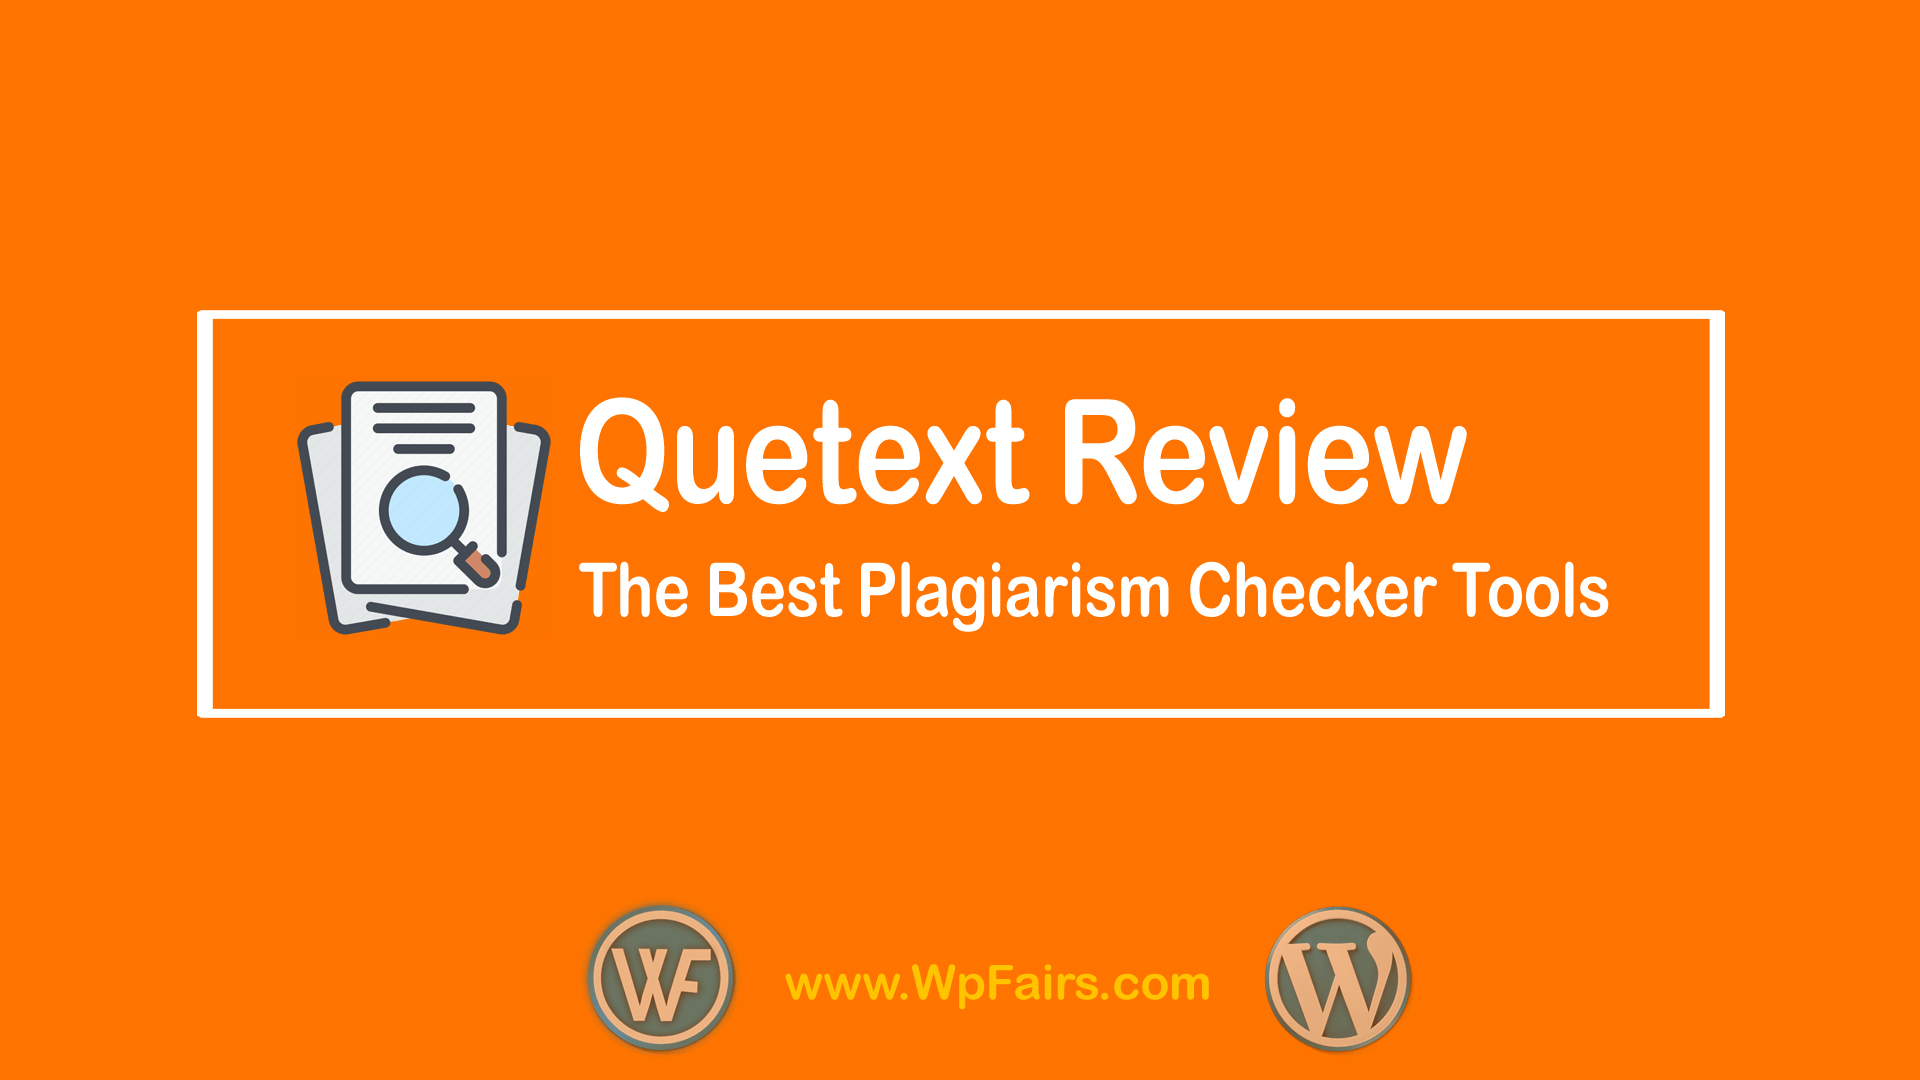 Quetext Review The Best Plagiarism Checker - wpfairs